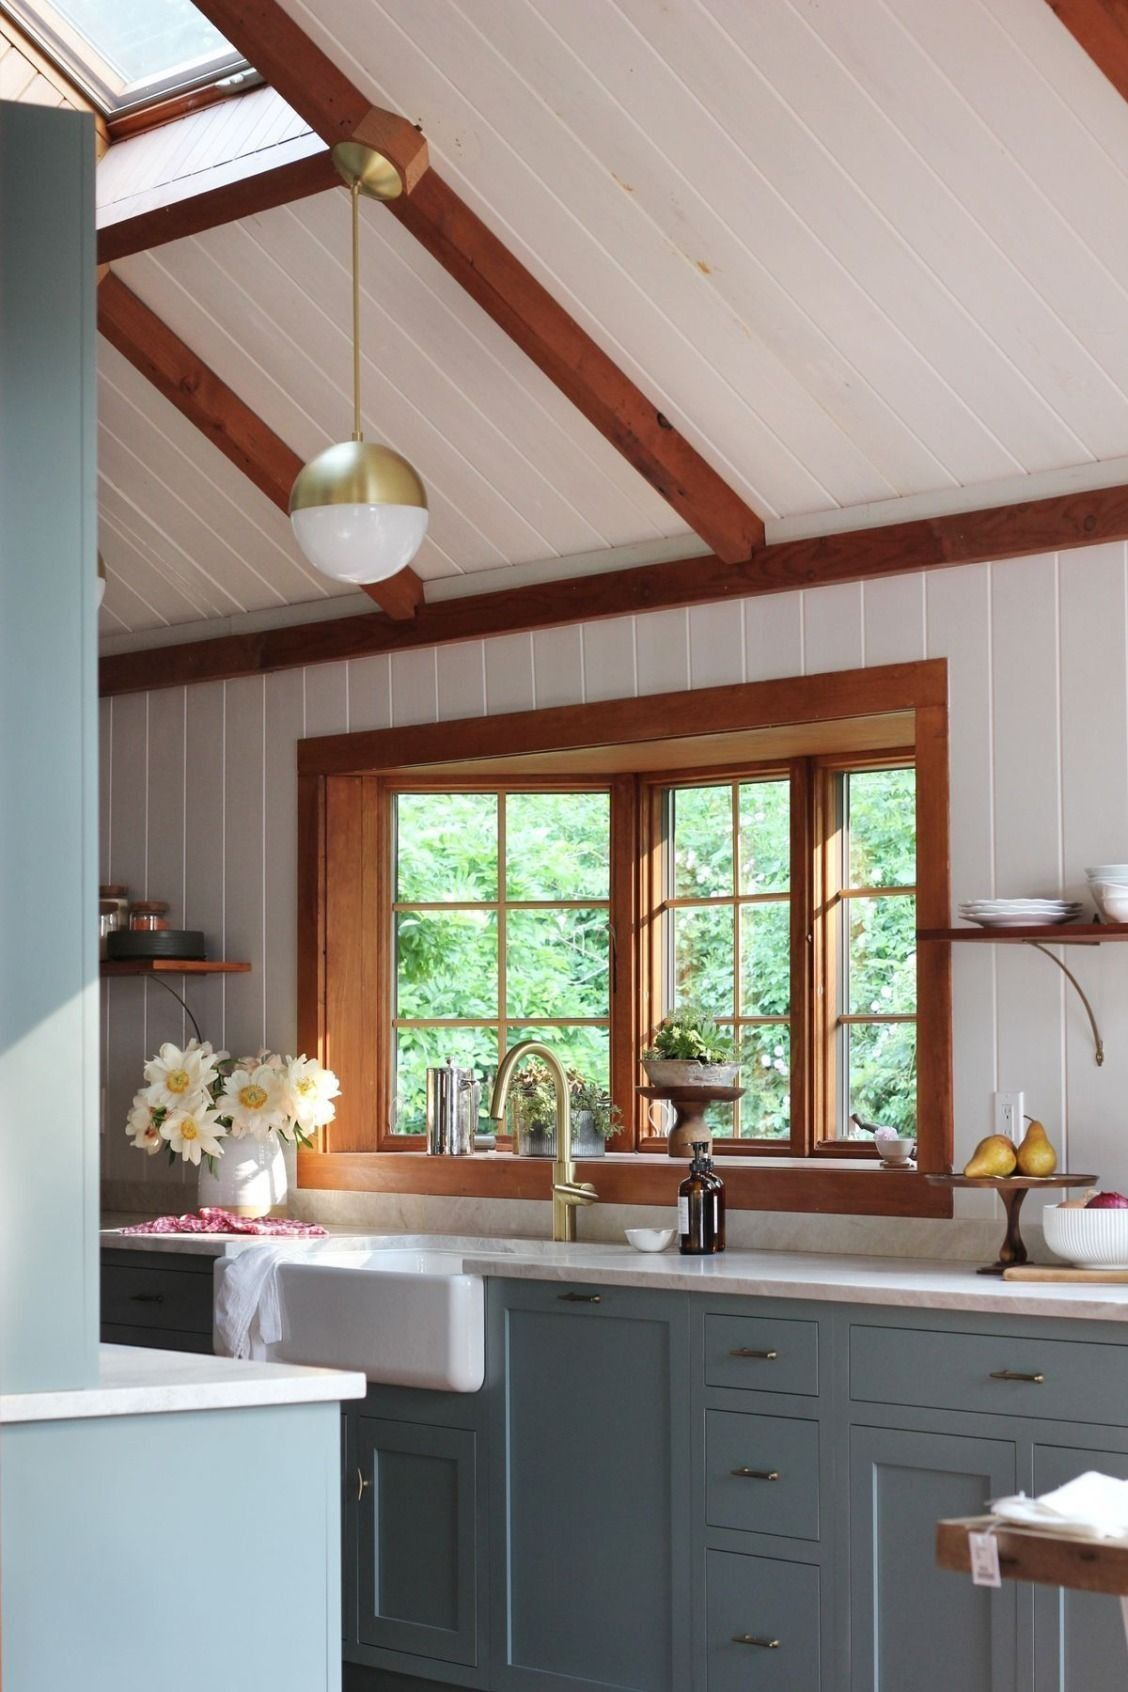 Beautiful French Blue Painted Kitchen Cabinets Shiplap Walls And Ceiling With Warm Walnut Stained Wood Trim Photo By Heidi S Bridge